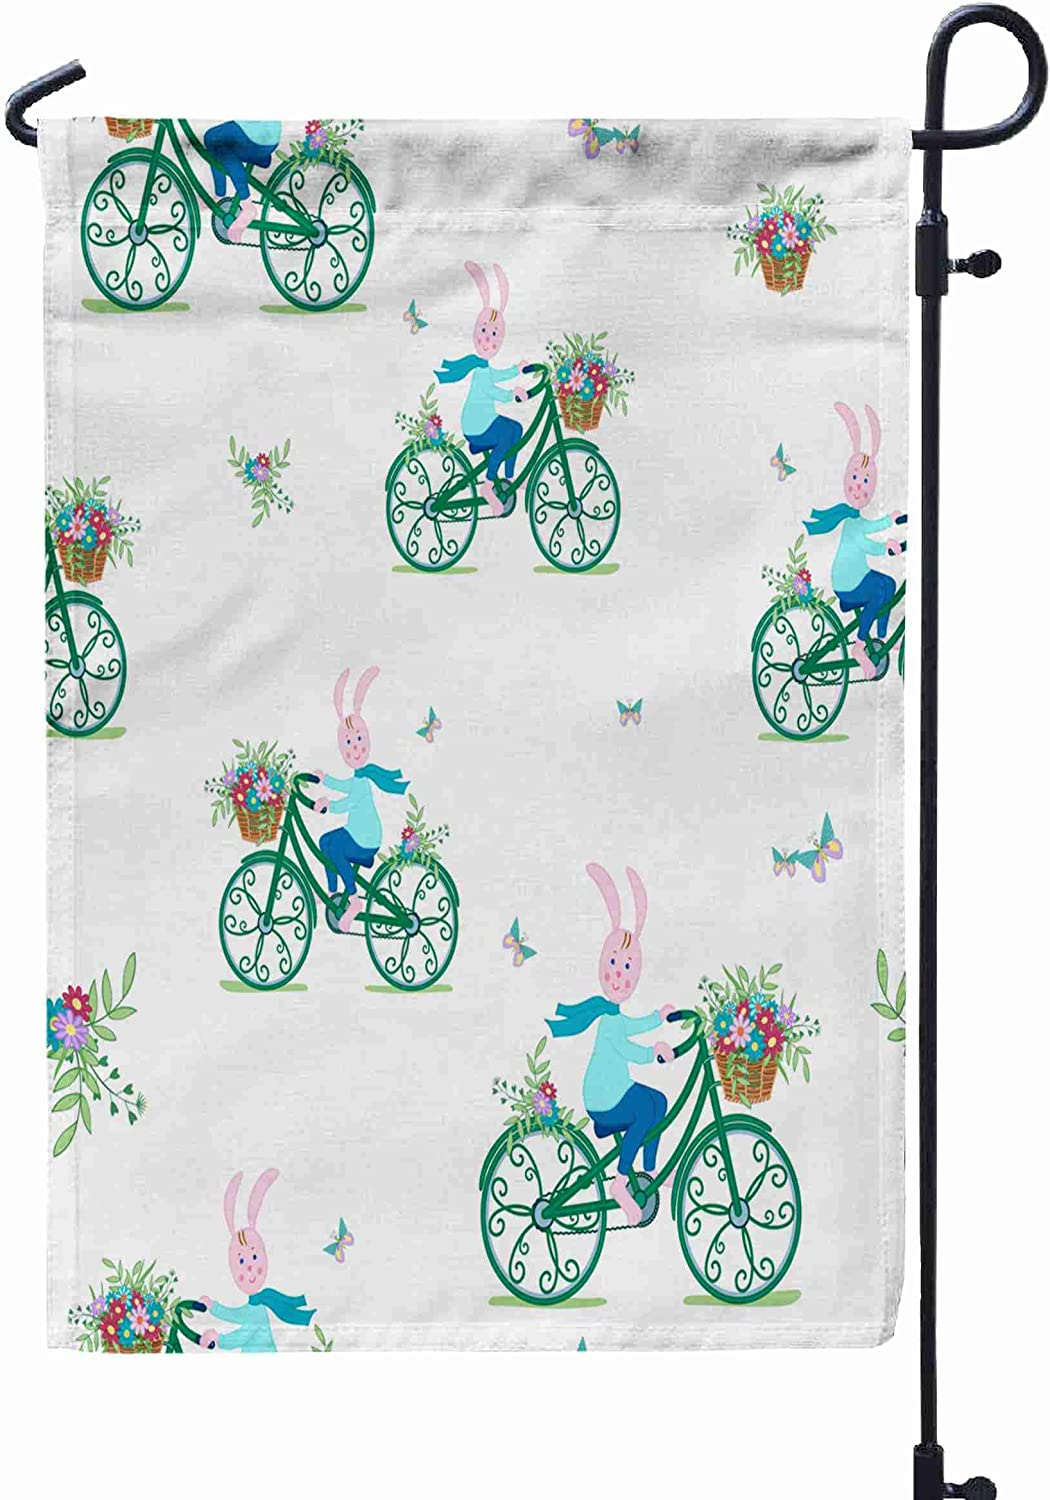 Shorping Welcome Garden Flag, 12x18Inch Bunny on Vintage Green Bike Carries Basket of Colorful Flowers Cartoon for Holiday and Seasonal Double-Sided Printing Yards Flags